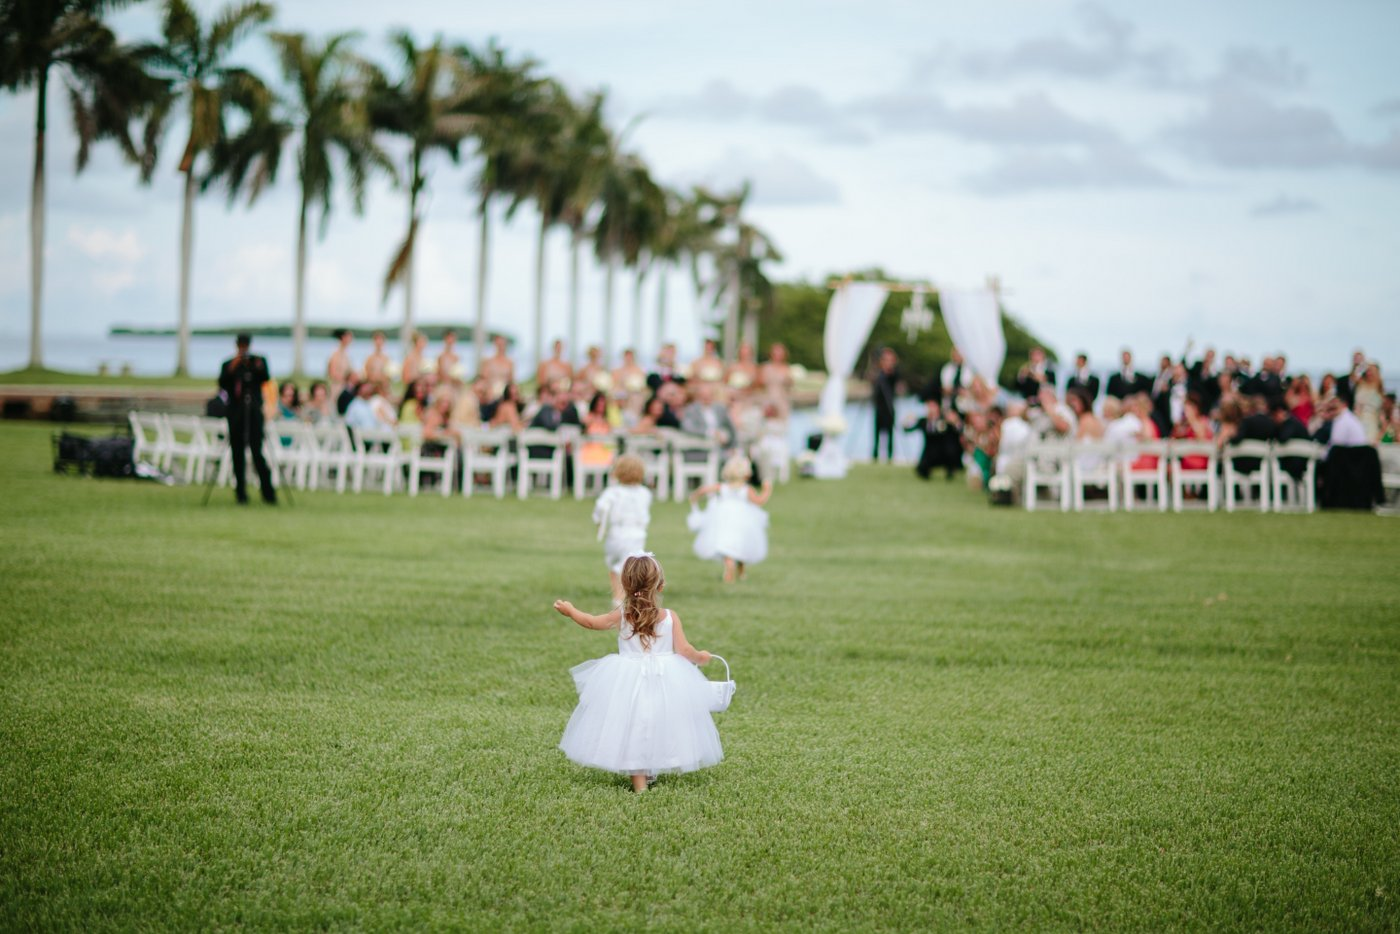 deering estate weddings on the lawn